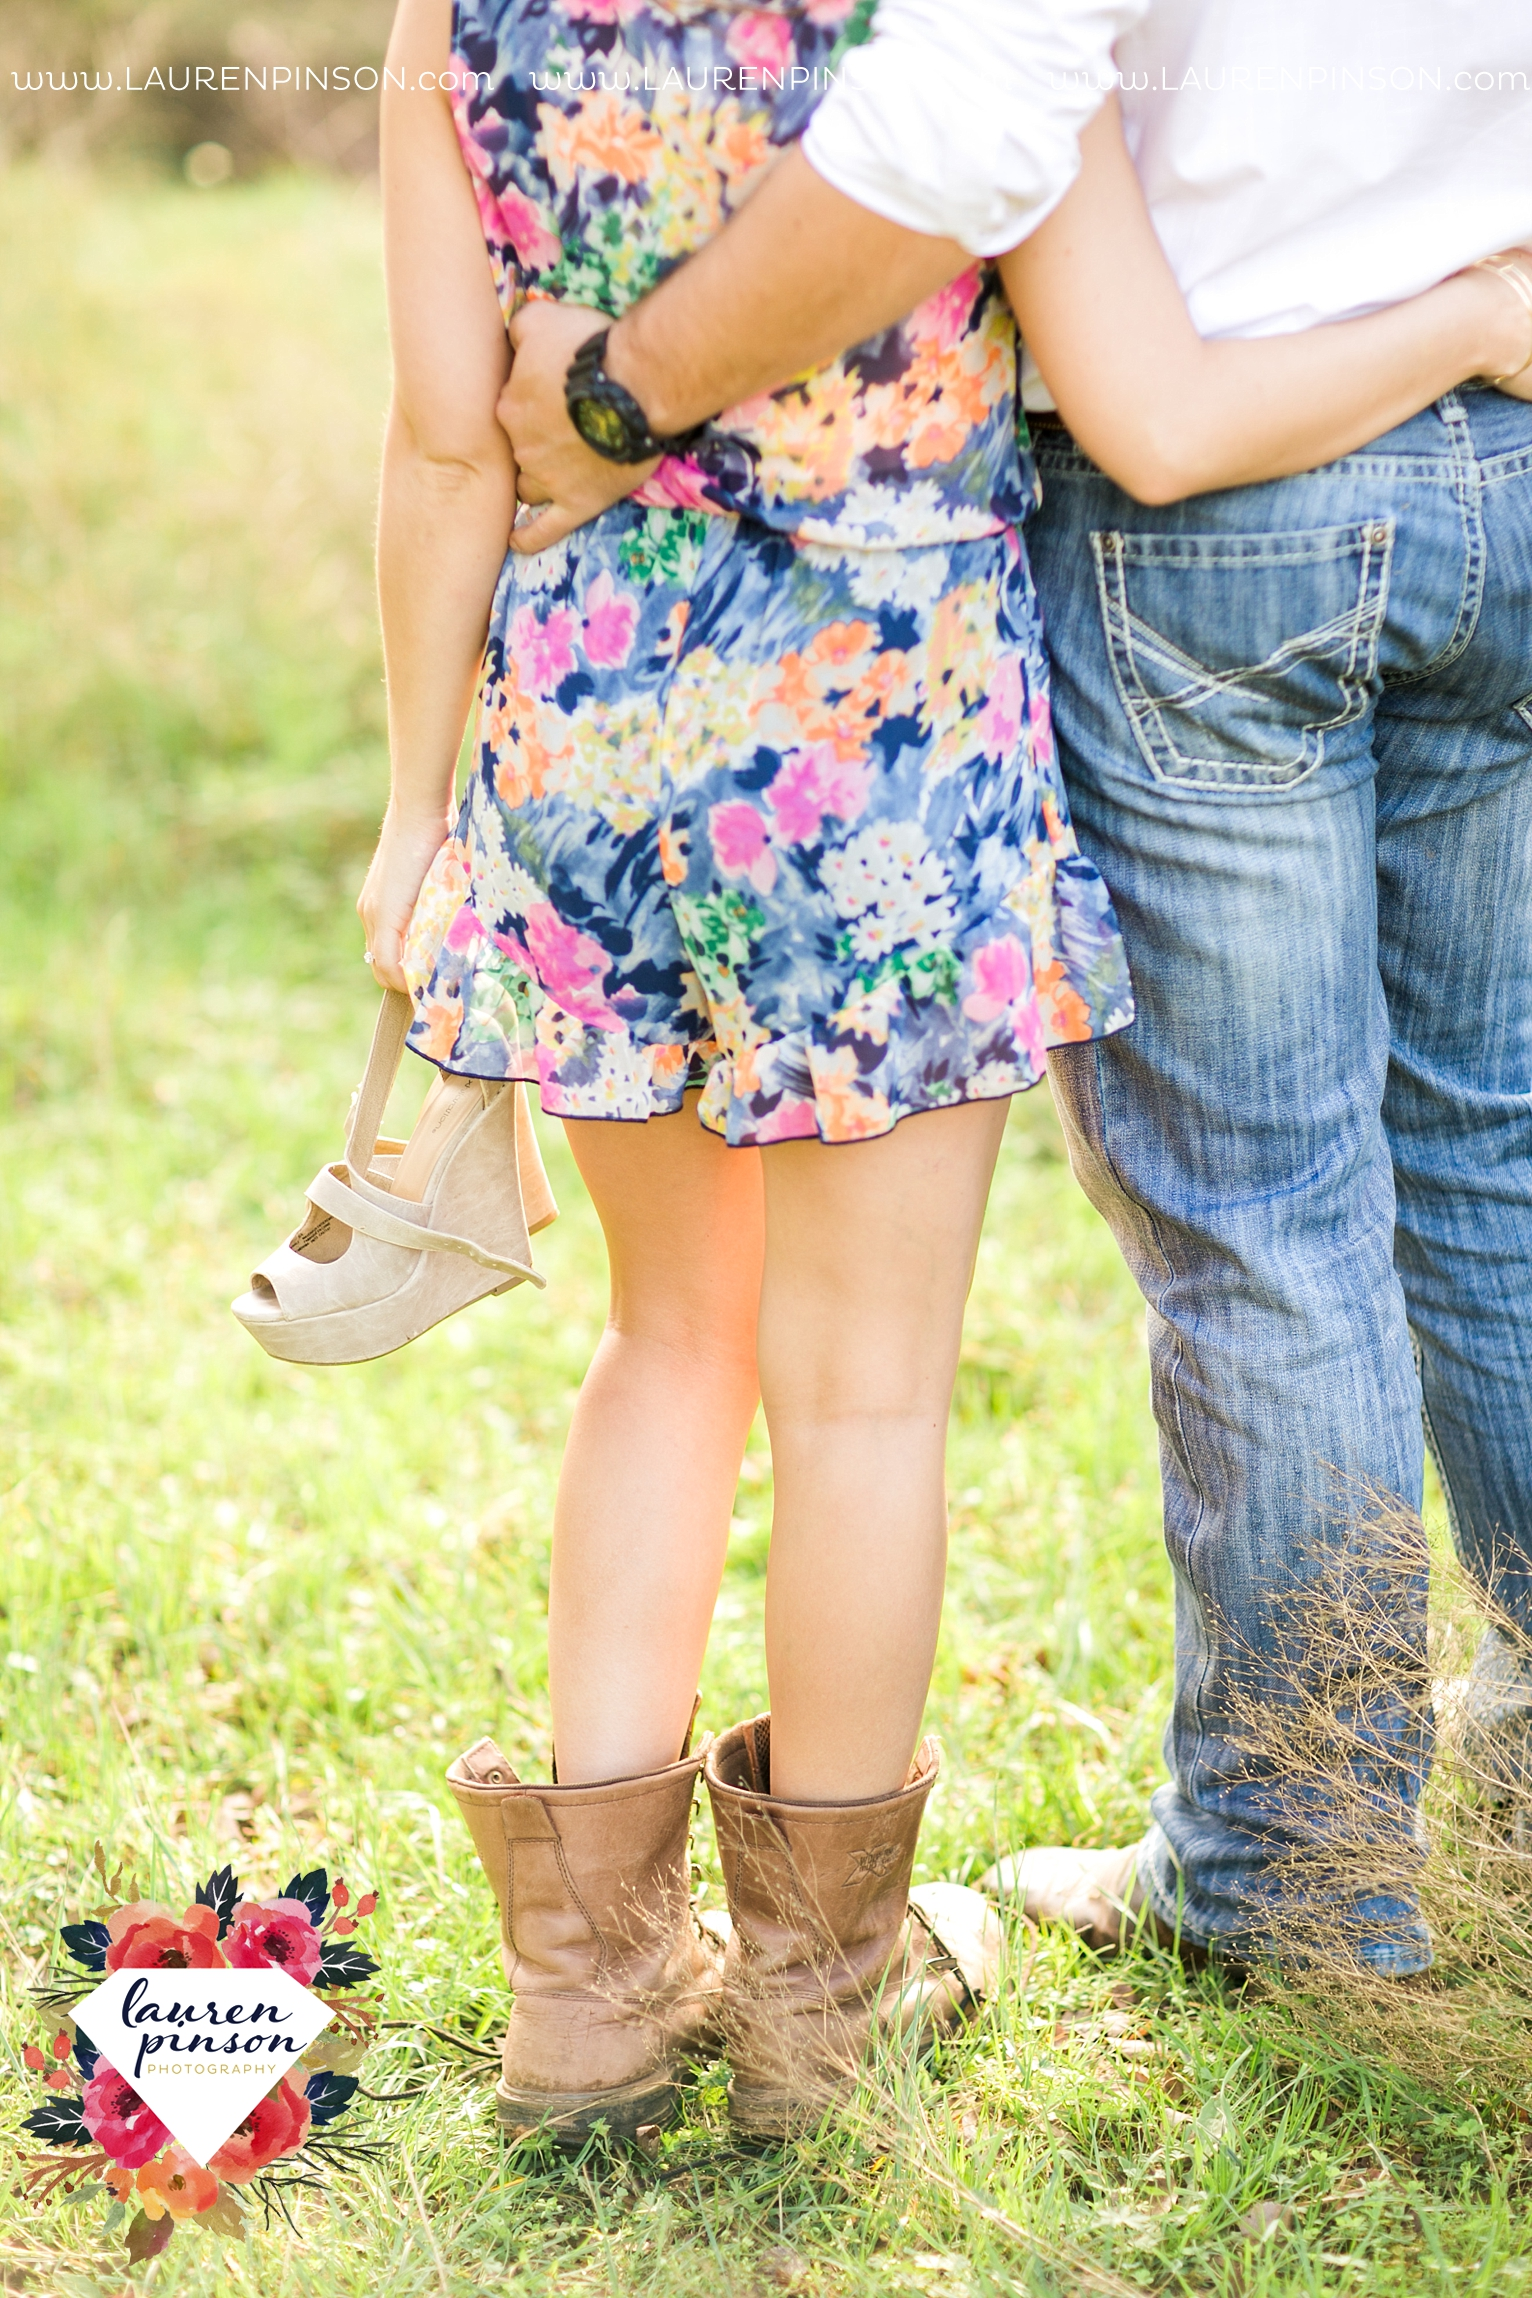 Wichita-falls-texas-country-outdoor-wheat-field-windthorst-engagement-session-and-wedding-photographer-00024.jpg